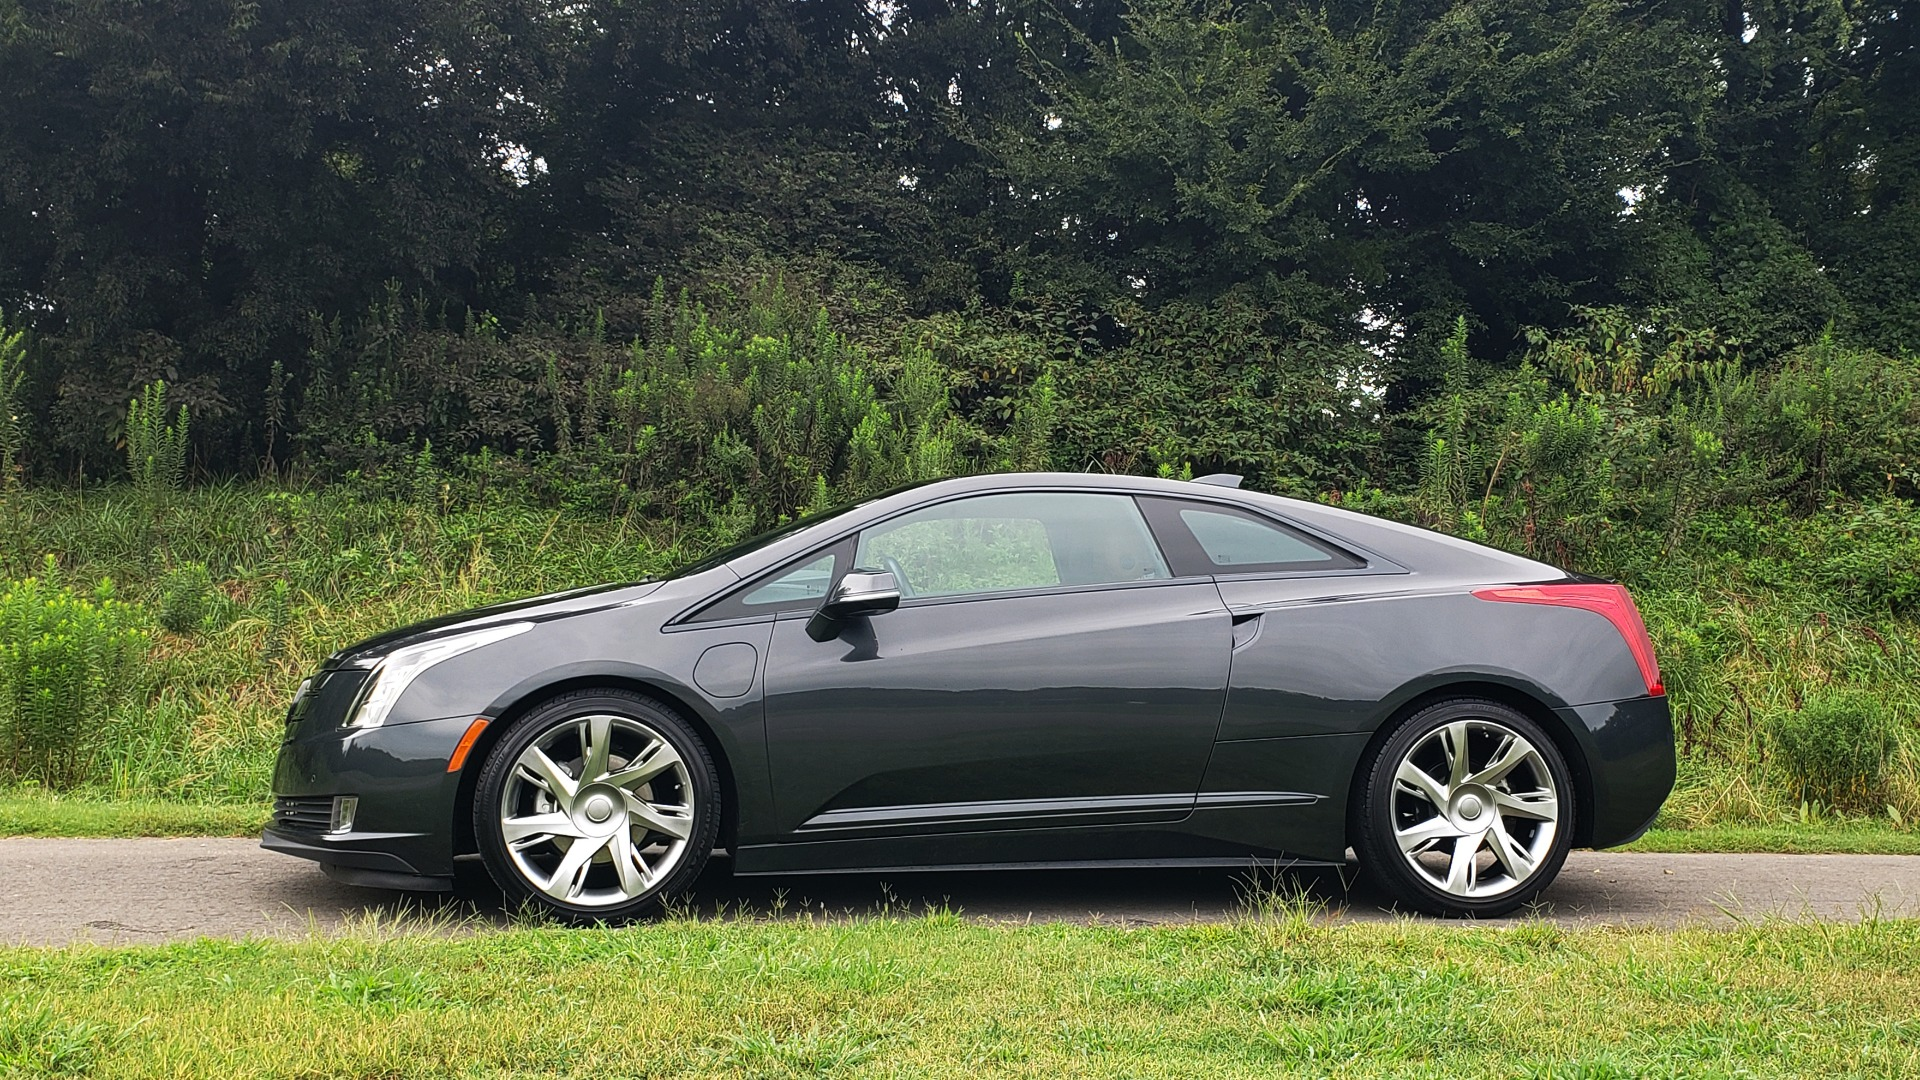 Used 2014 Cadillac ELR 2DR COUPE / HYBRID / NAV / BOSE / HEATED SEATS / REARVIEW for sale $34,000 at Formula Imports in Charlotte NC 28227 4